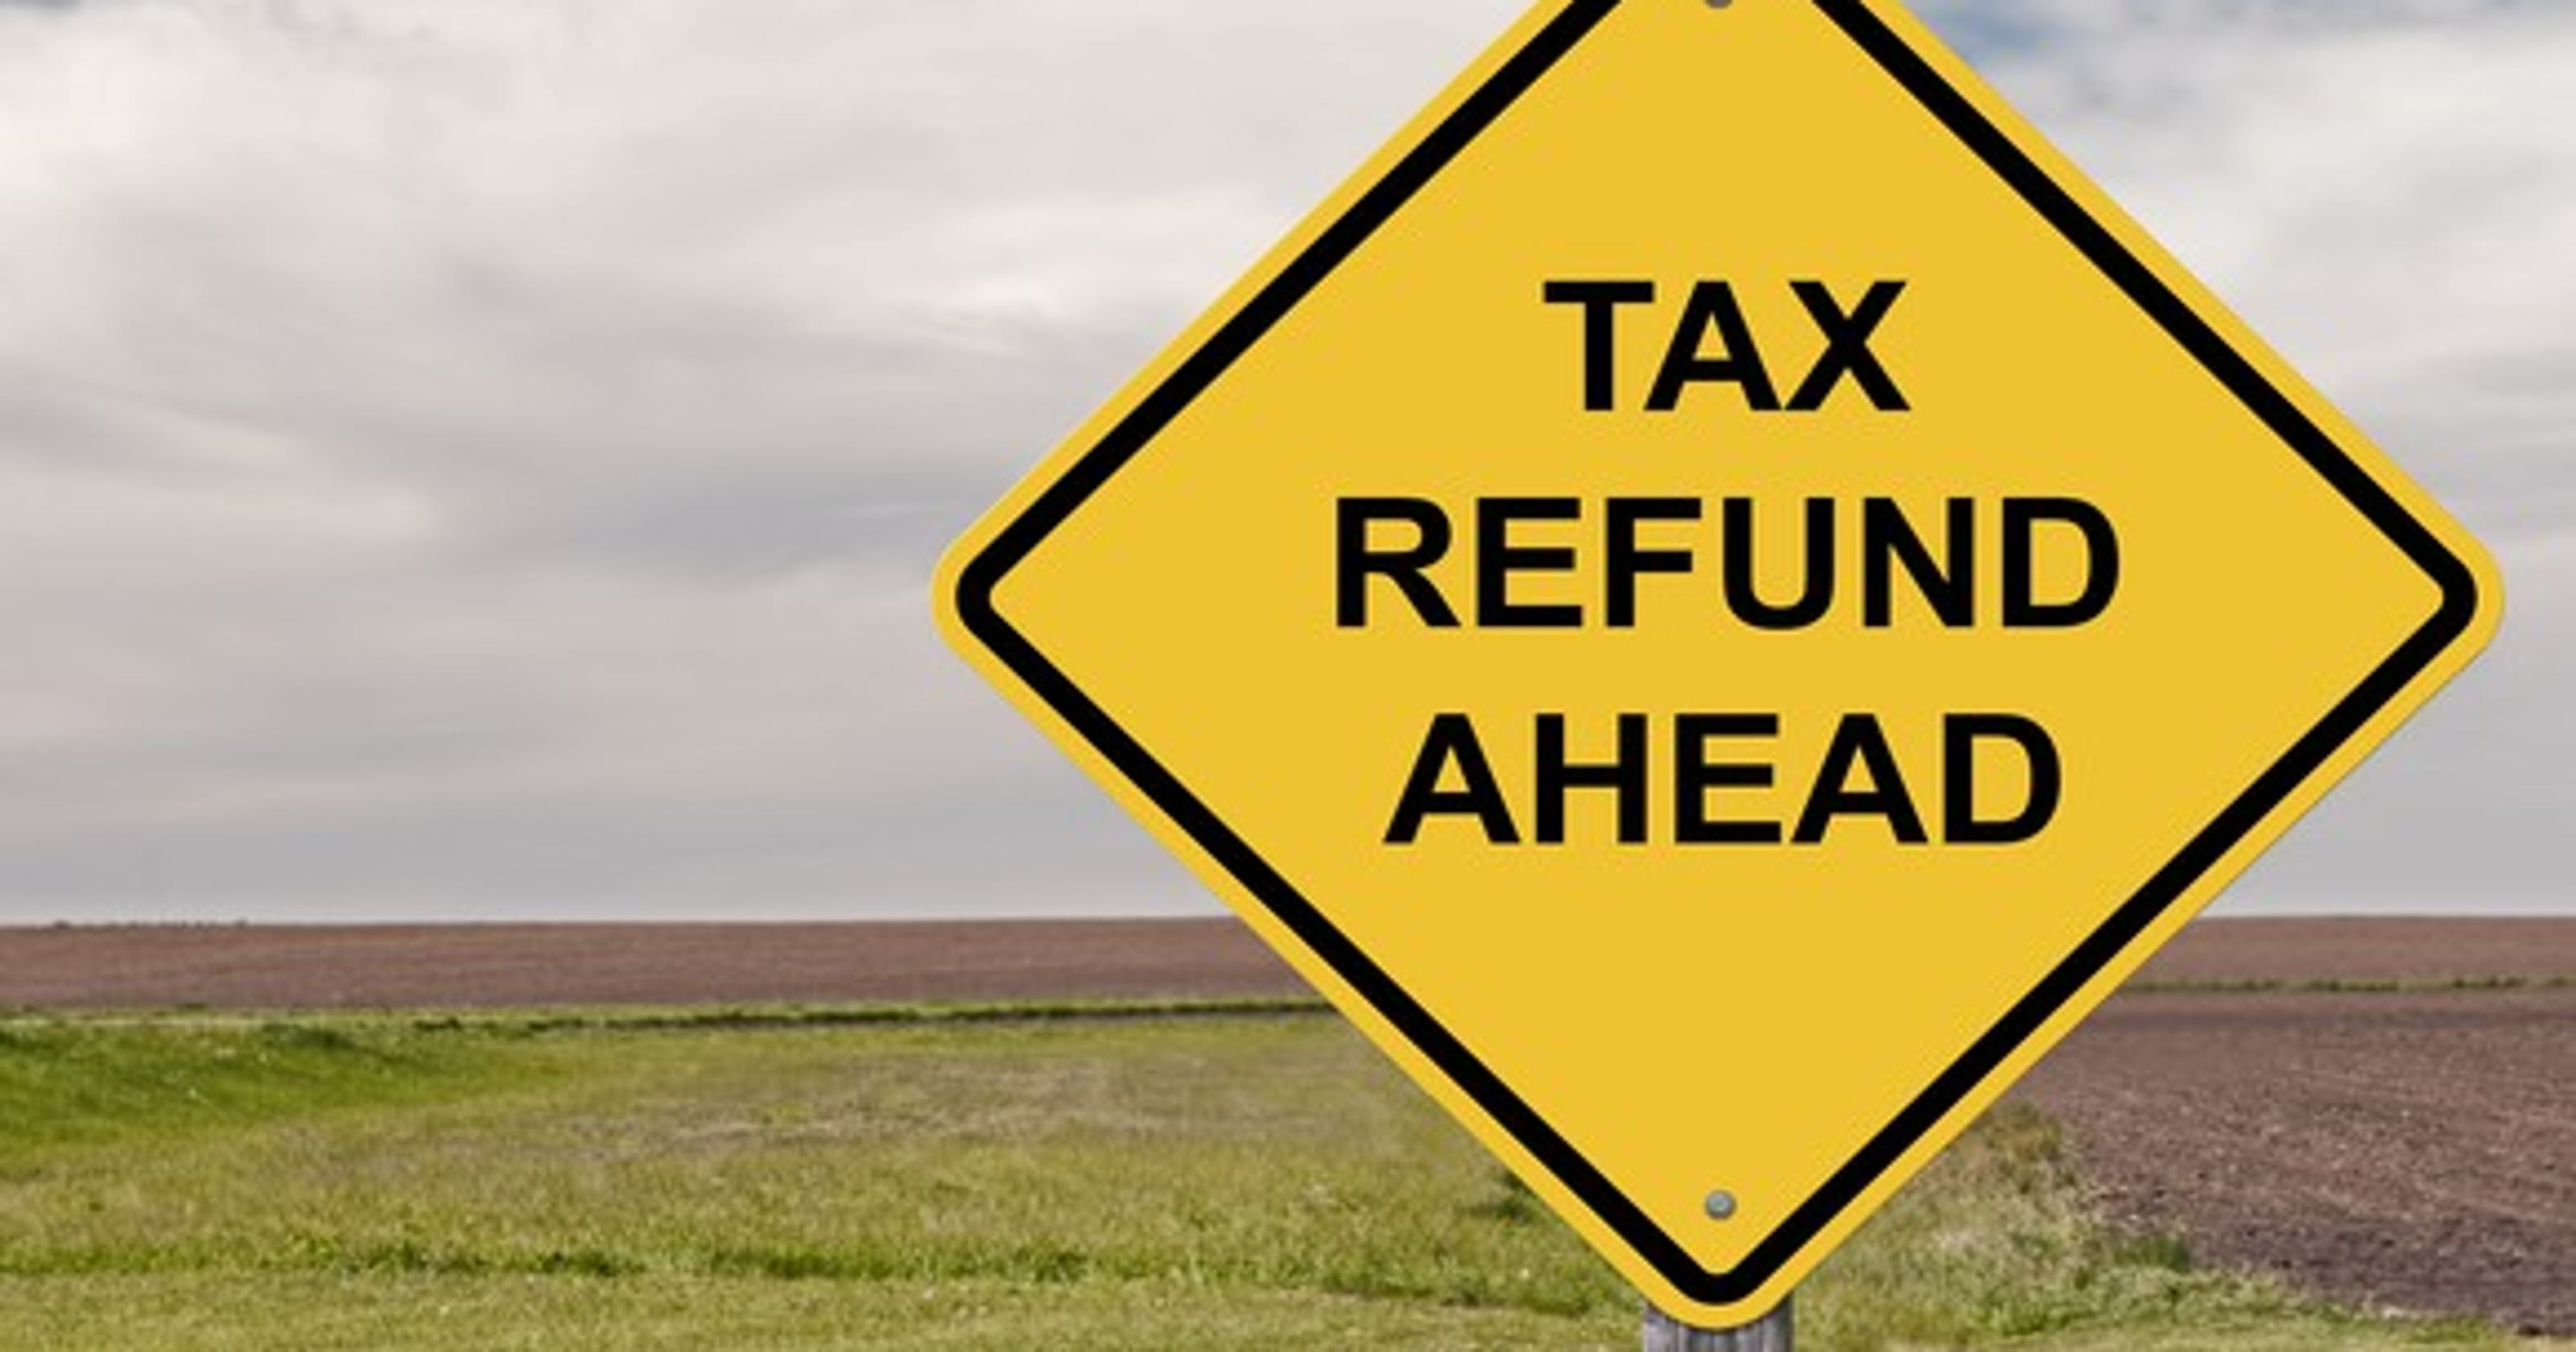 30 Of Younger Americans Might Blow Their Tax Refunds This